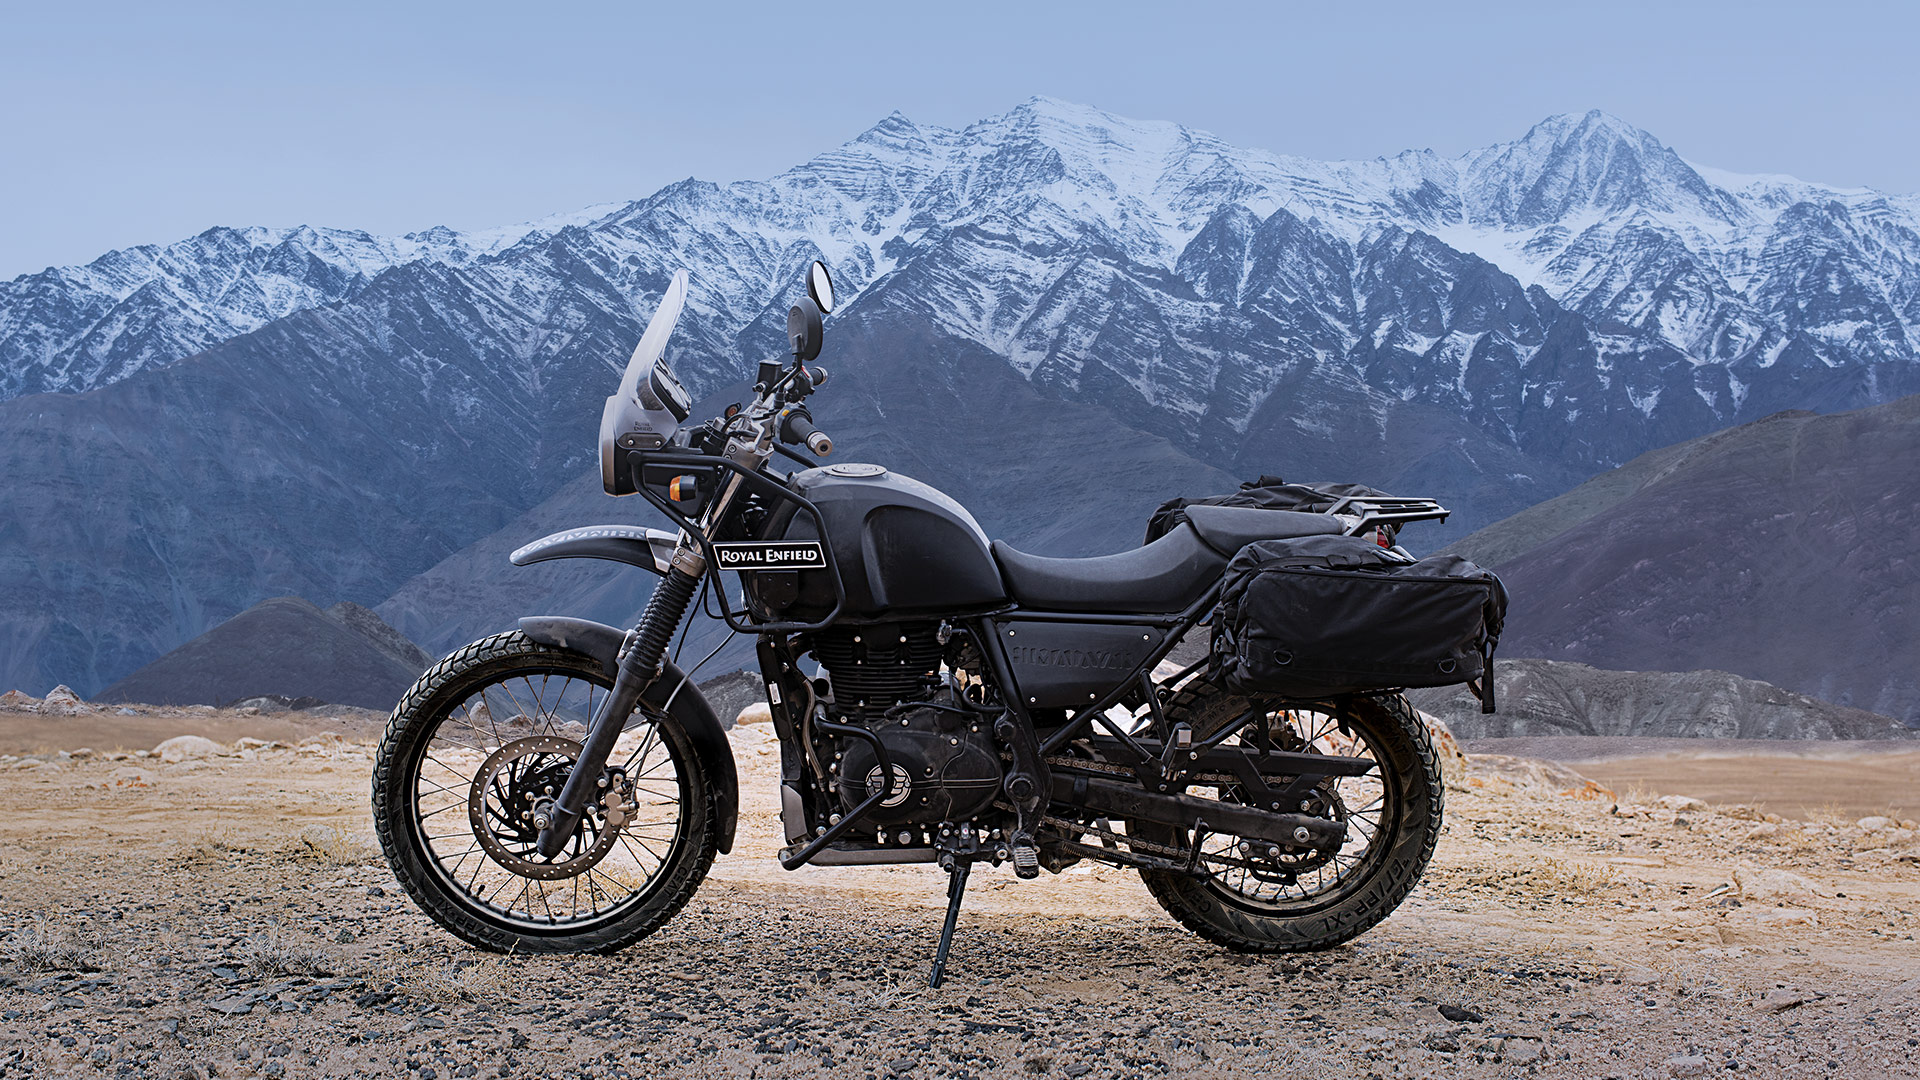 Leh ladak trip 5 things you need to know about the new royal enfield himalayan bike